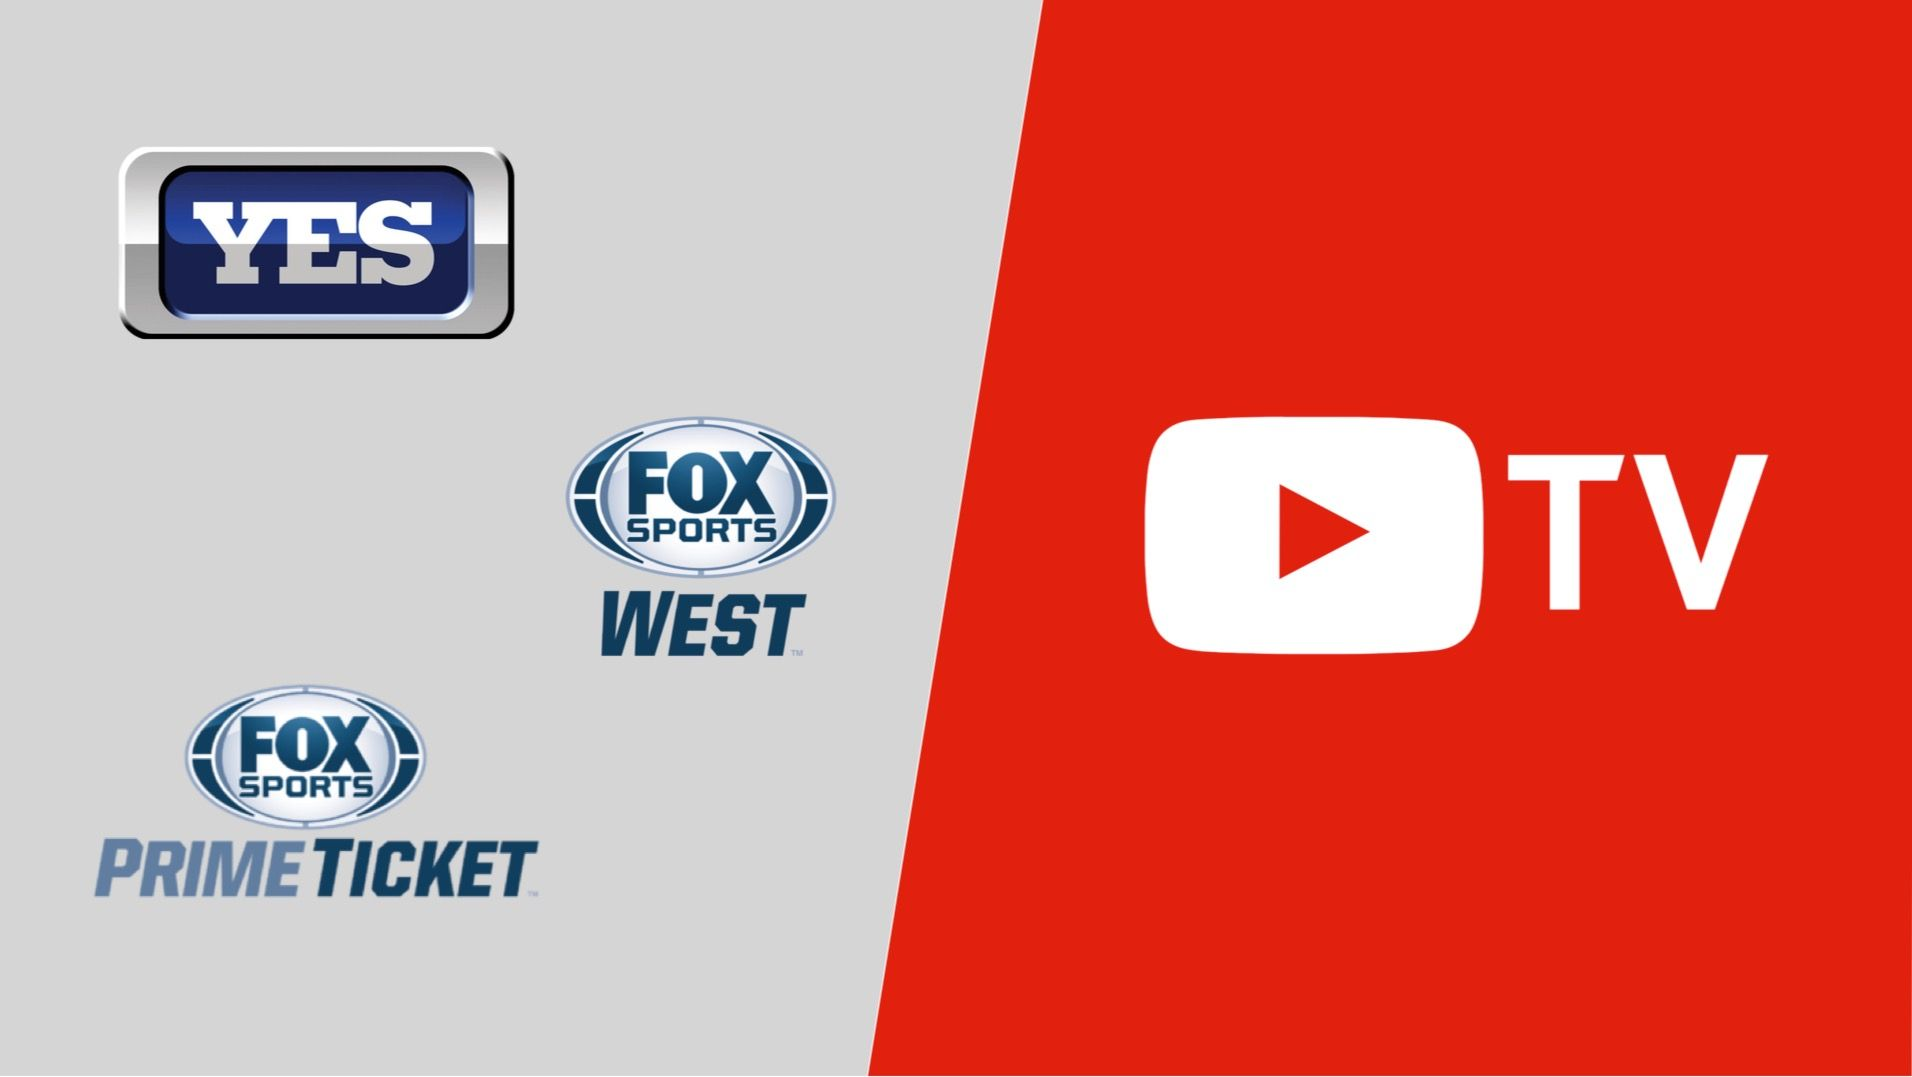 How to Stream YES Network Fox Sports West & Fox Sports